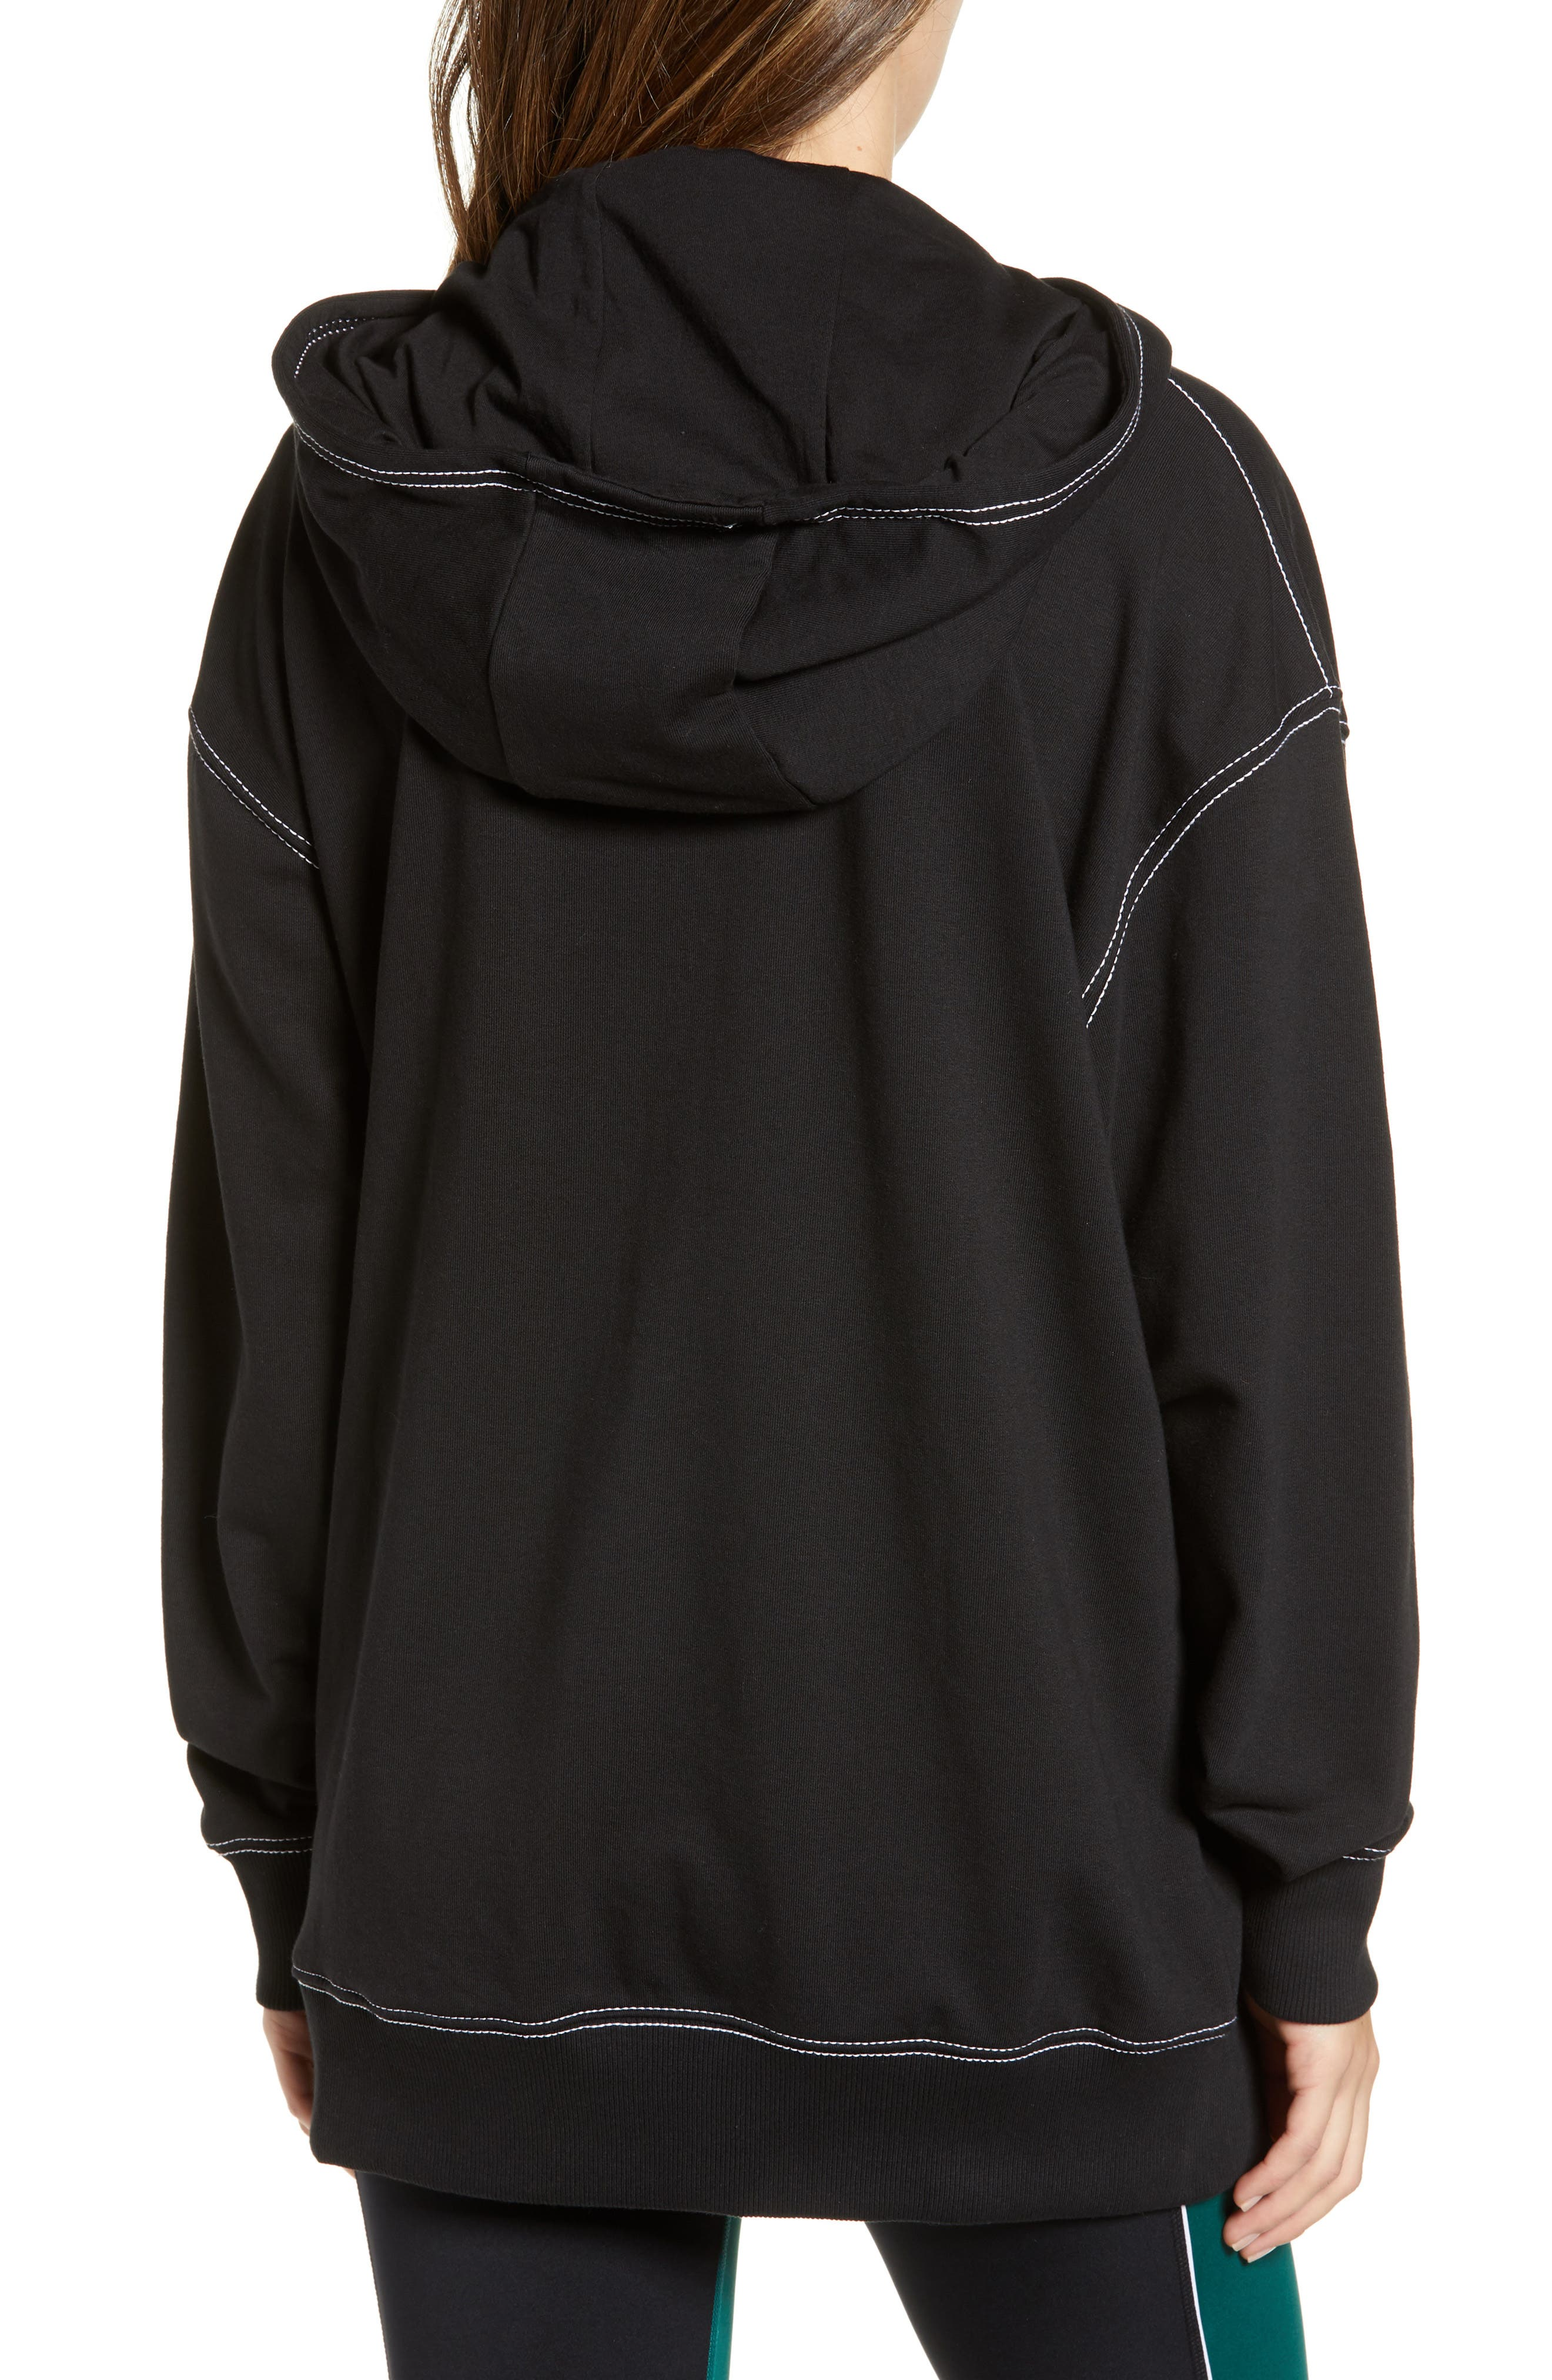 IVY PARK<SUP>®</SUP>, Stab Stitch Hoodie, Alternate thumbnail 2, color, 002